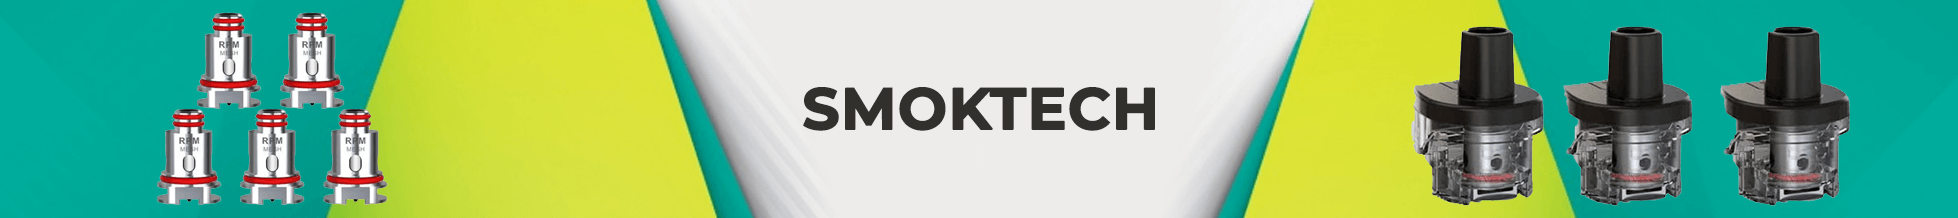 smoktech-category-banner.png